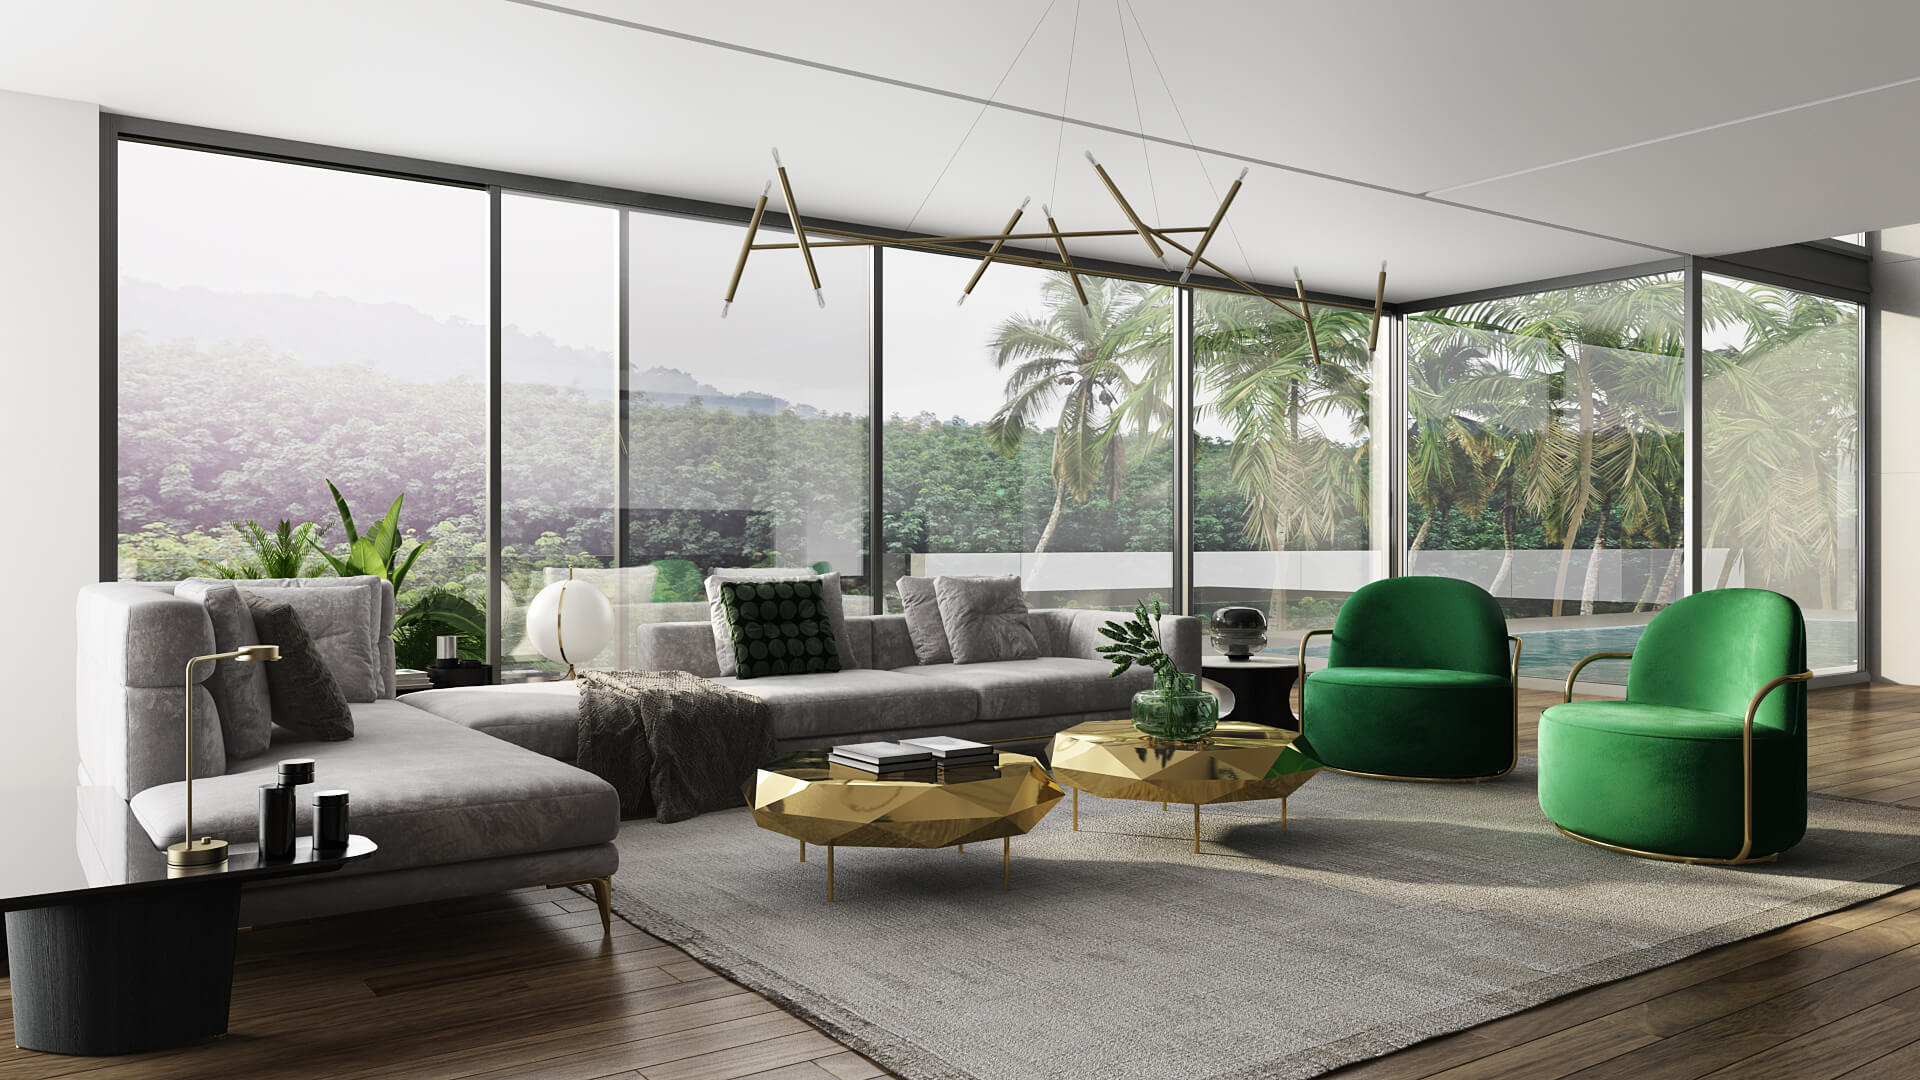 Interior Design Visualization of a Stylish Living Area